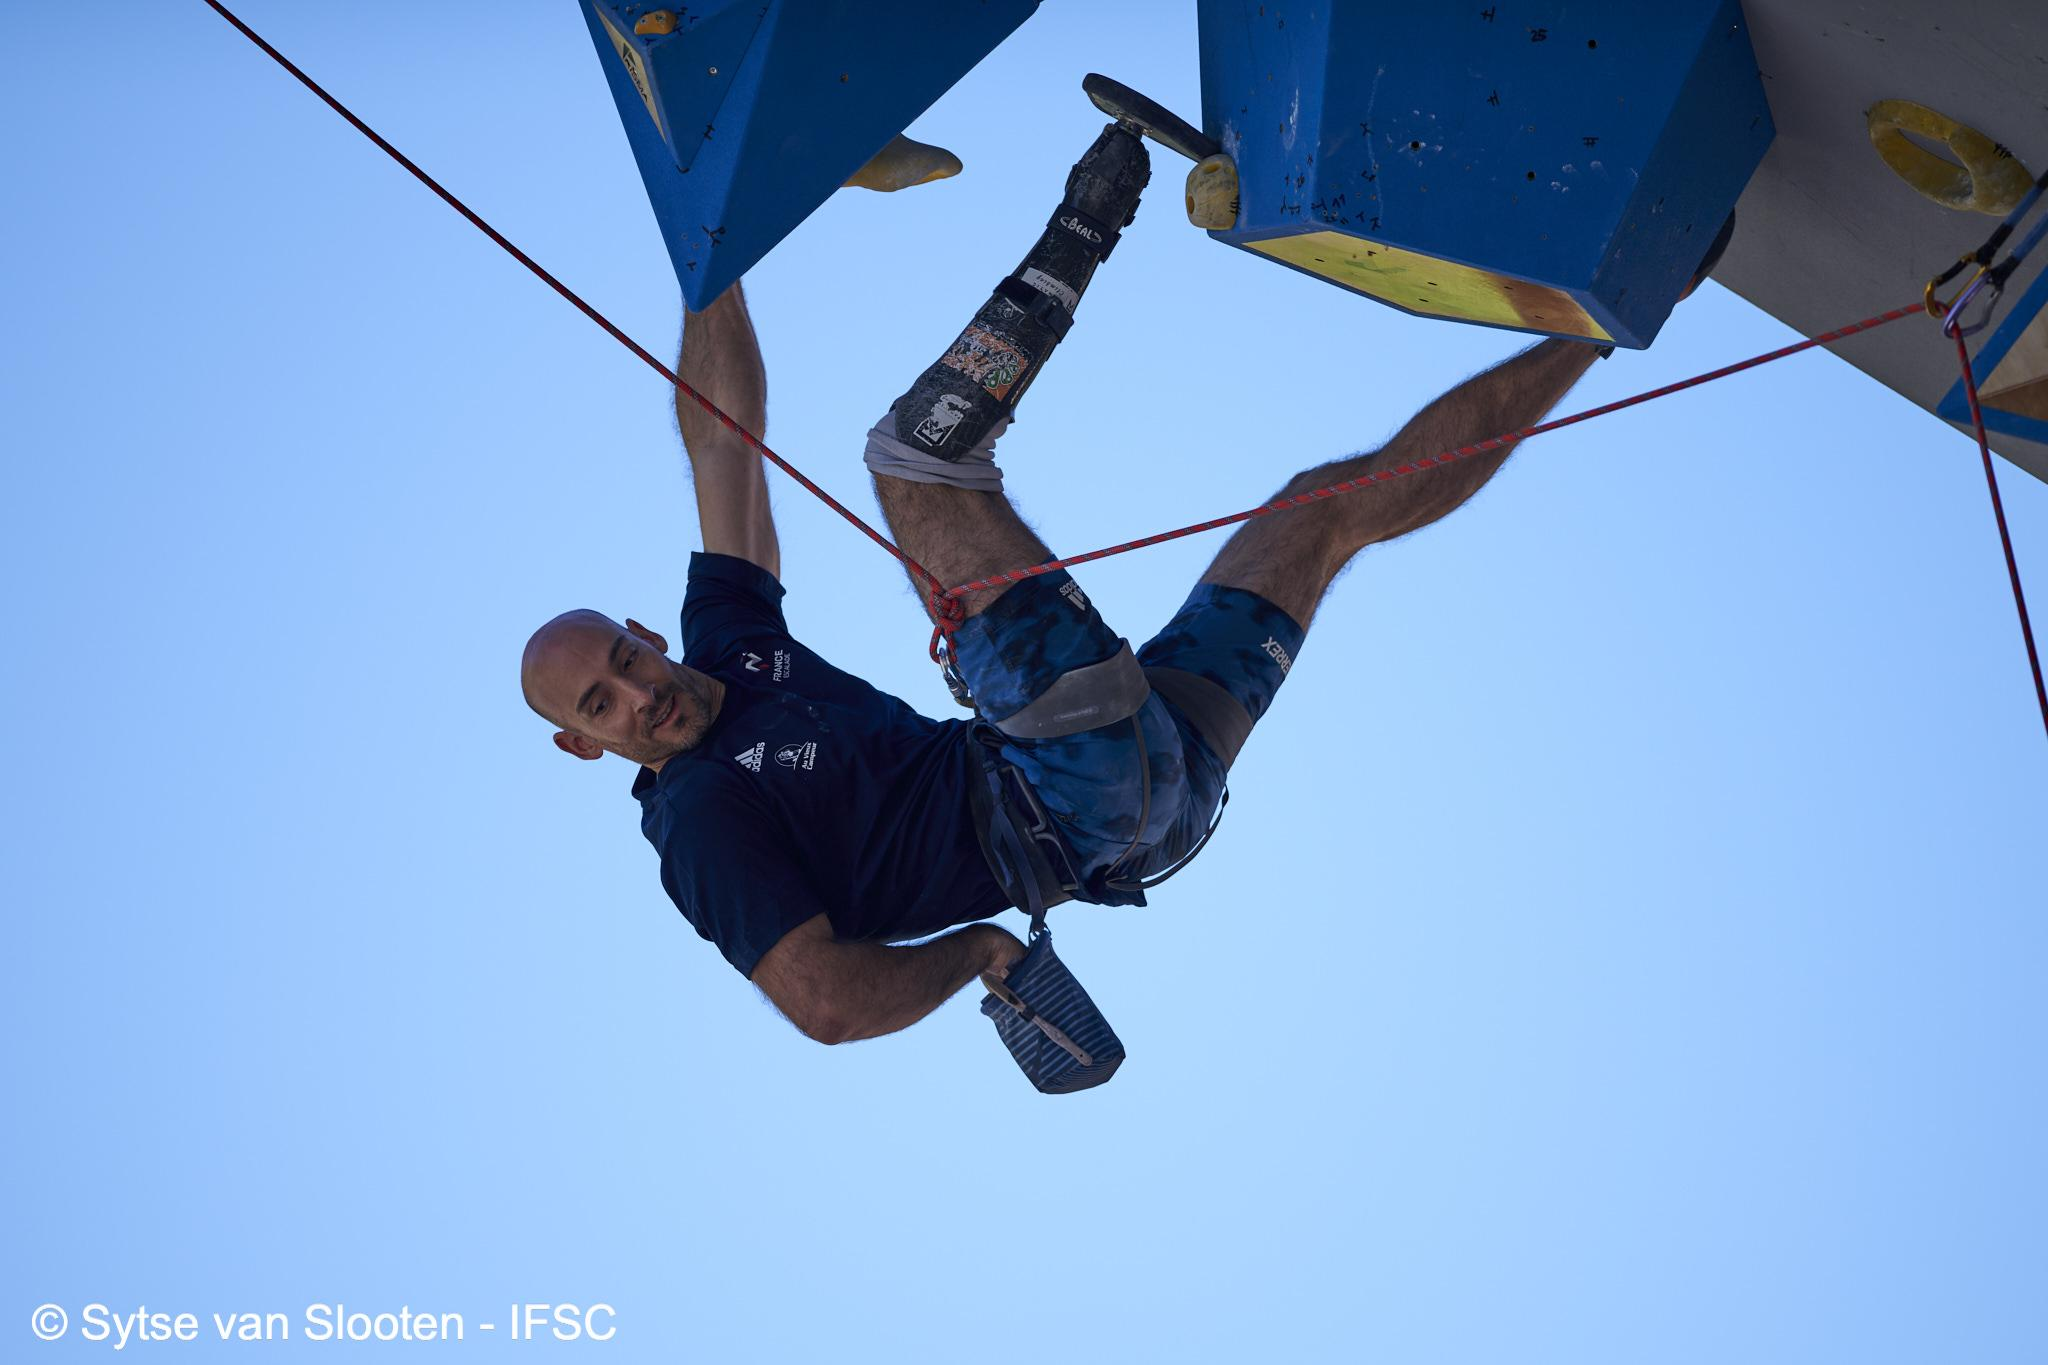 210111 IFSC News Paraclimbing set for a big leap forward in 2021